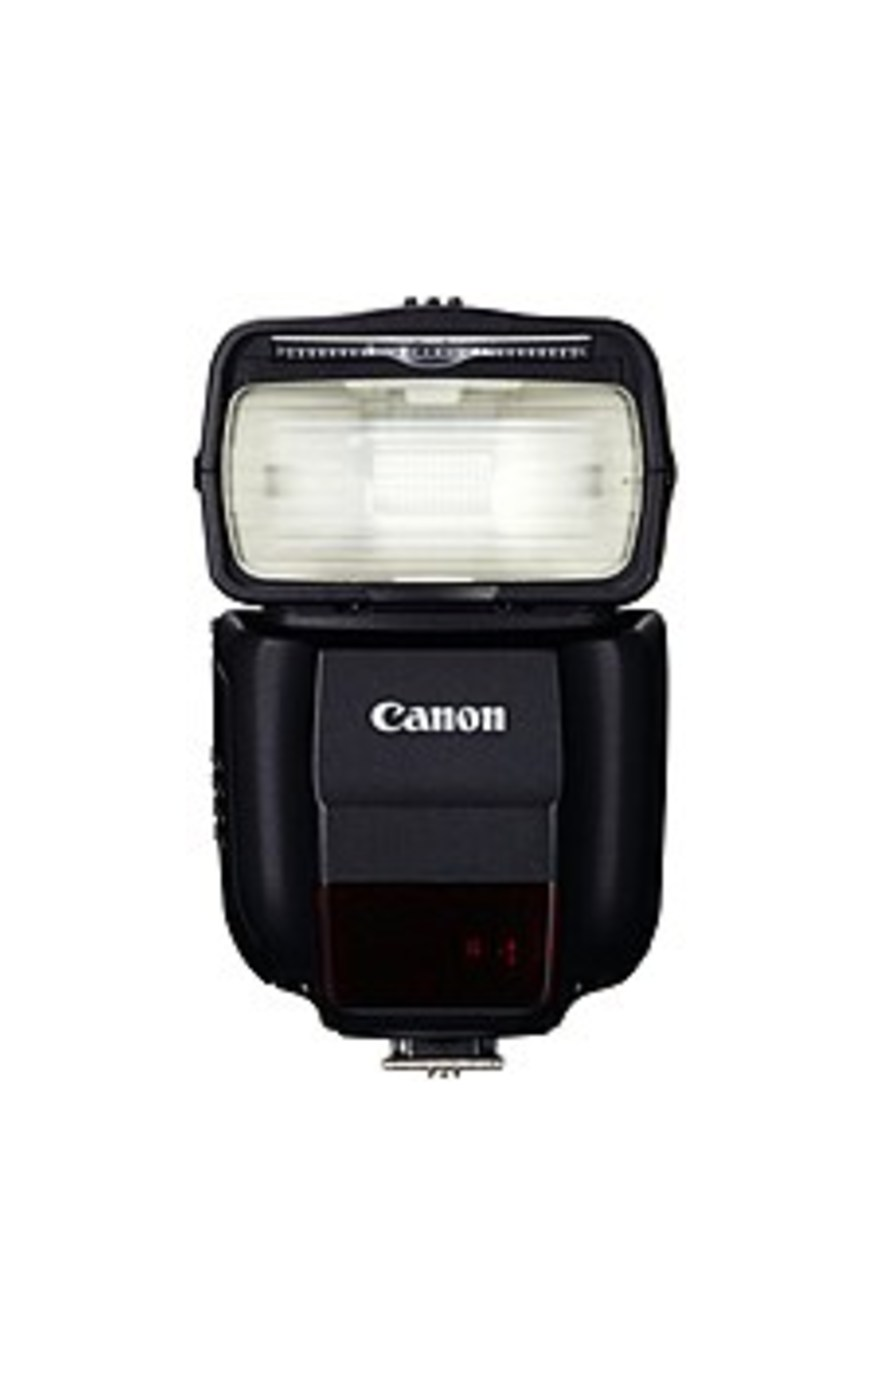 Canon_Speedlite_0585C006_430EX_III-RT_Hot-Shoe_Clip-On_Camera_Flash_-_141.1_Feet_at_ISO_100_Guide_Number_-_Black